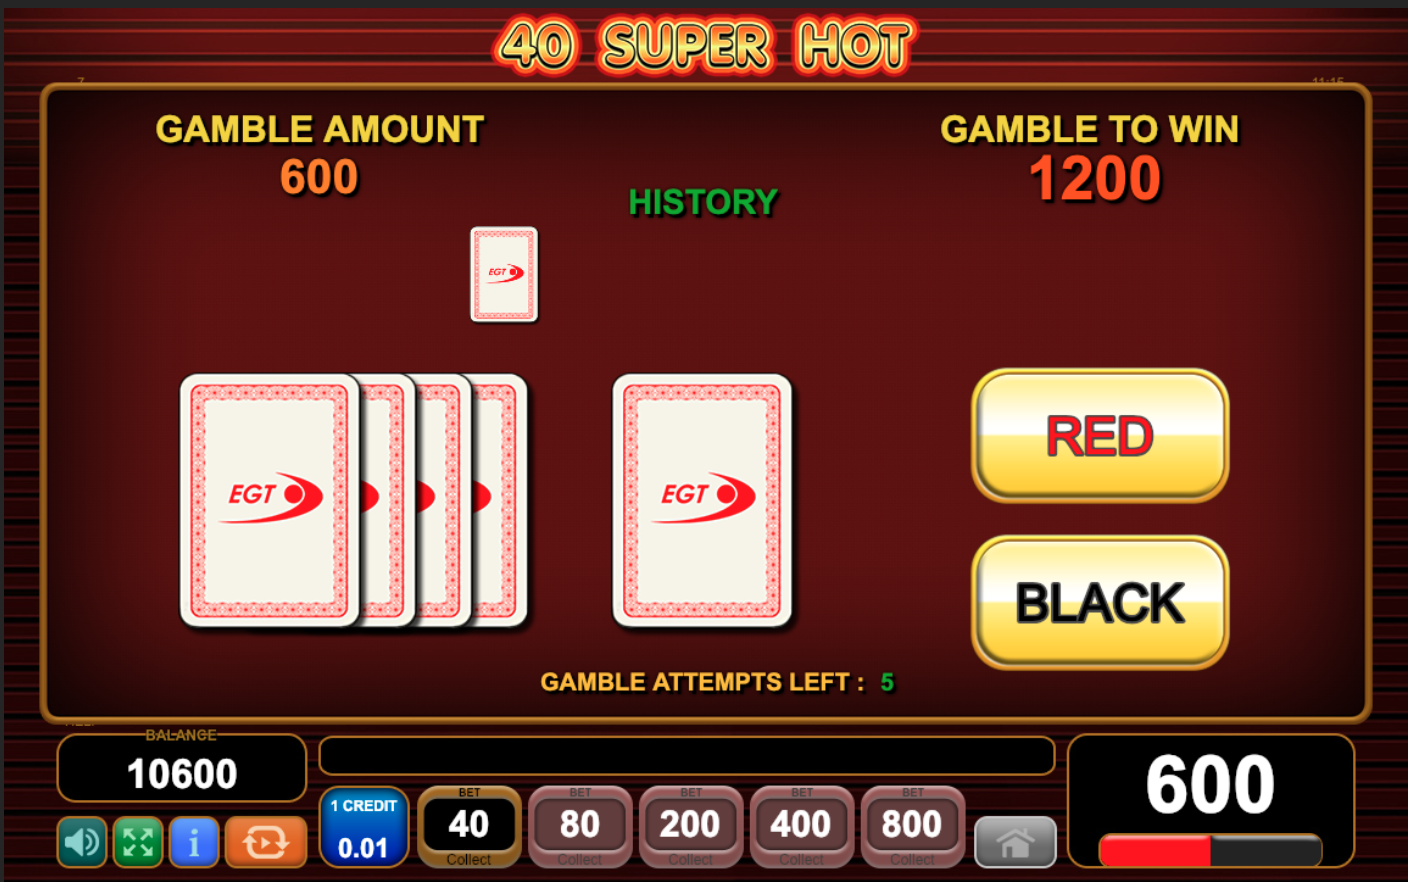 Gamble function